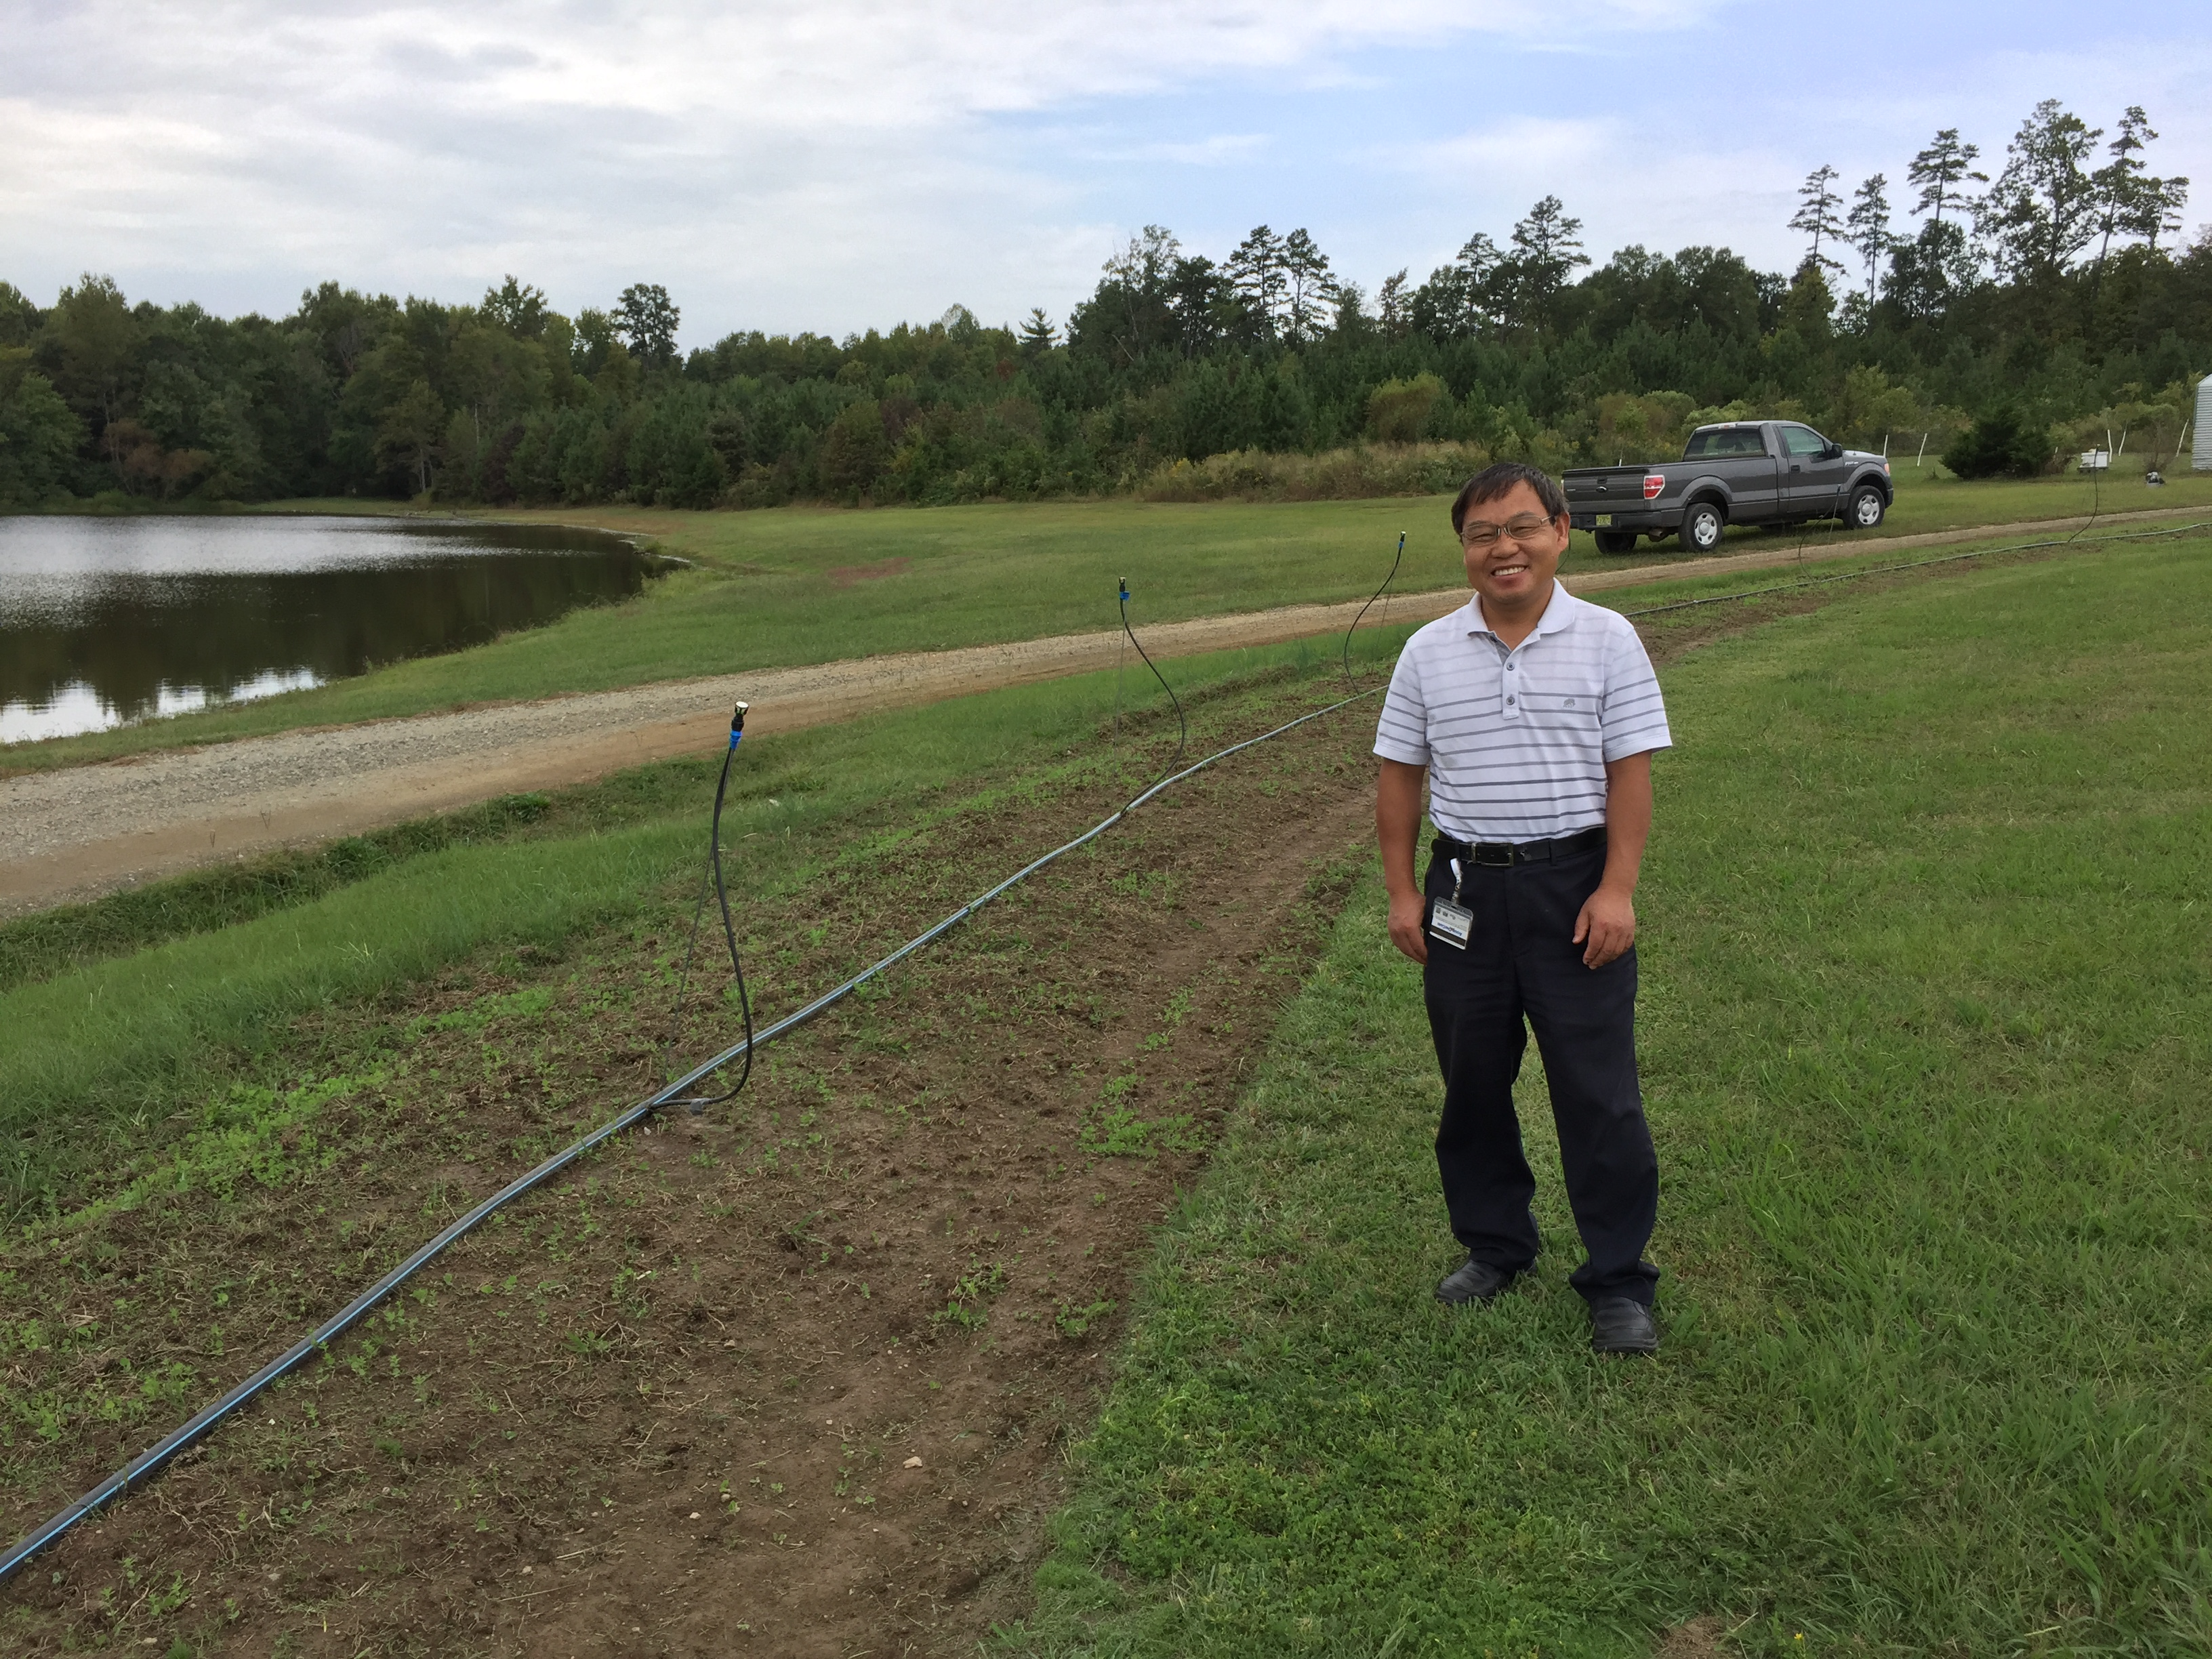 A smiling man stands near the hedgerow-to-be, currently a bed of soil with small plants and some irrigation set up.